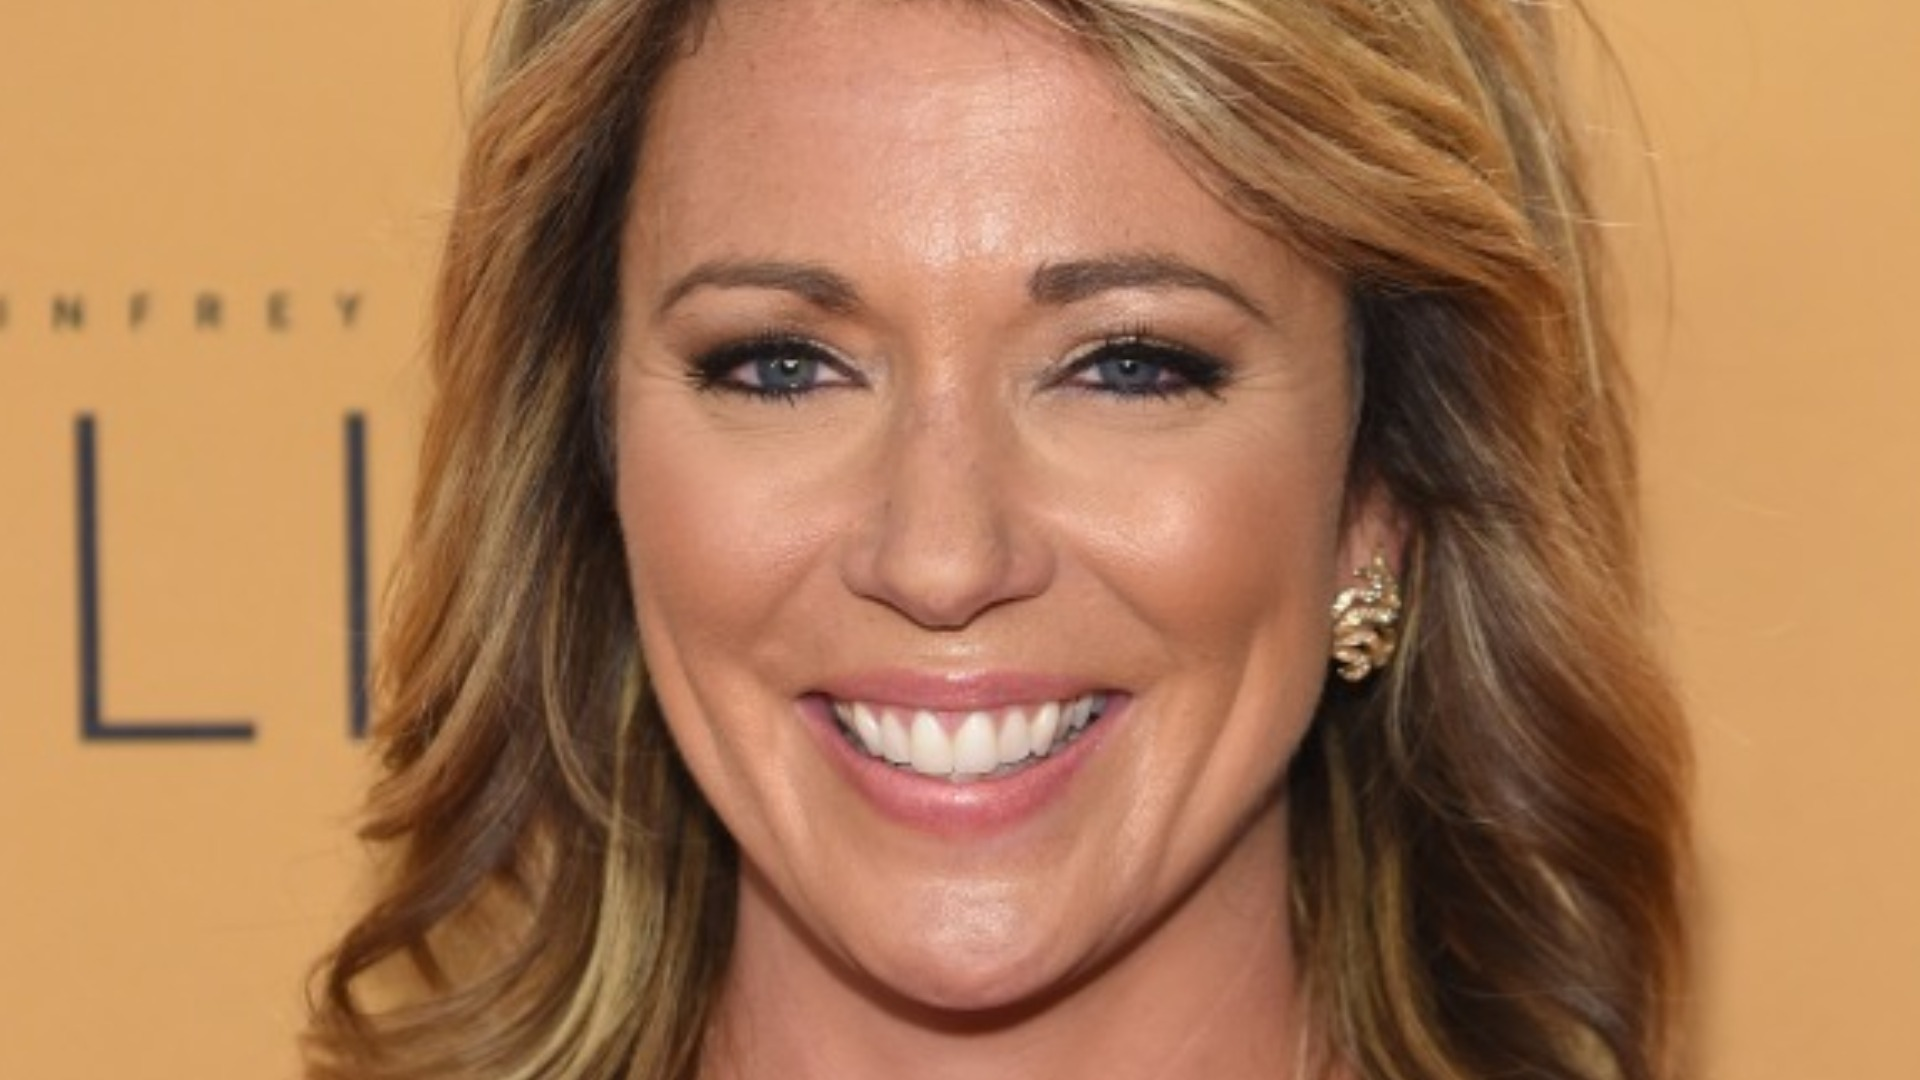 The Real Reason Brooke Baldwin Quit Her CNN Anchor Job